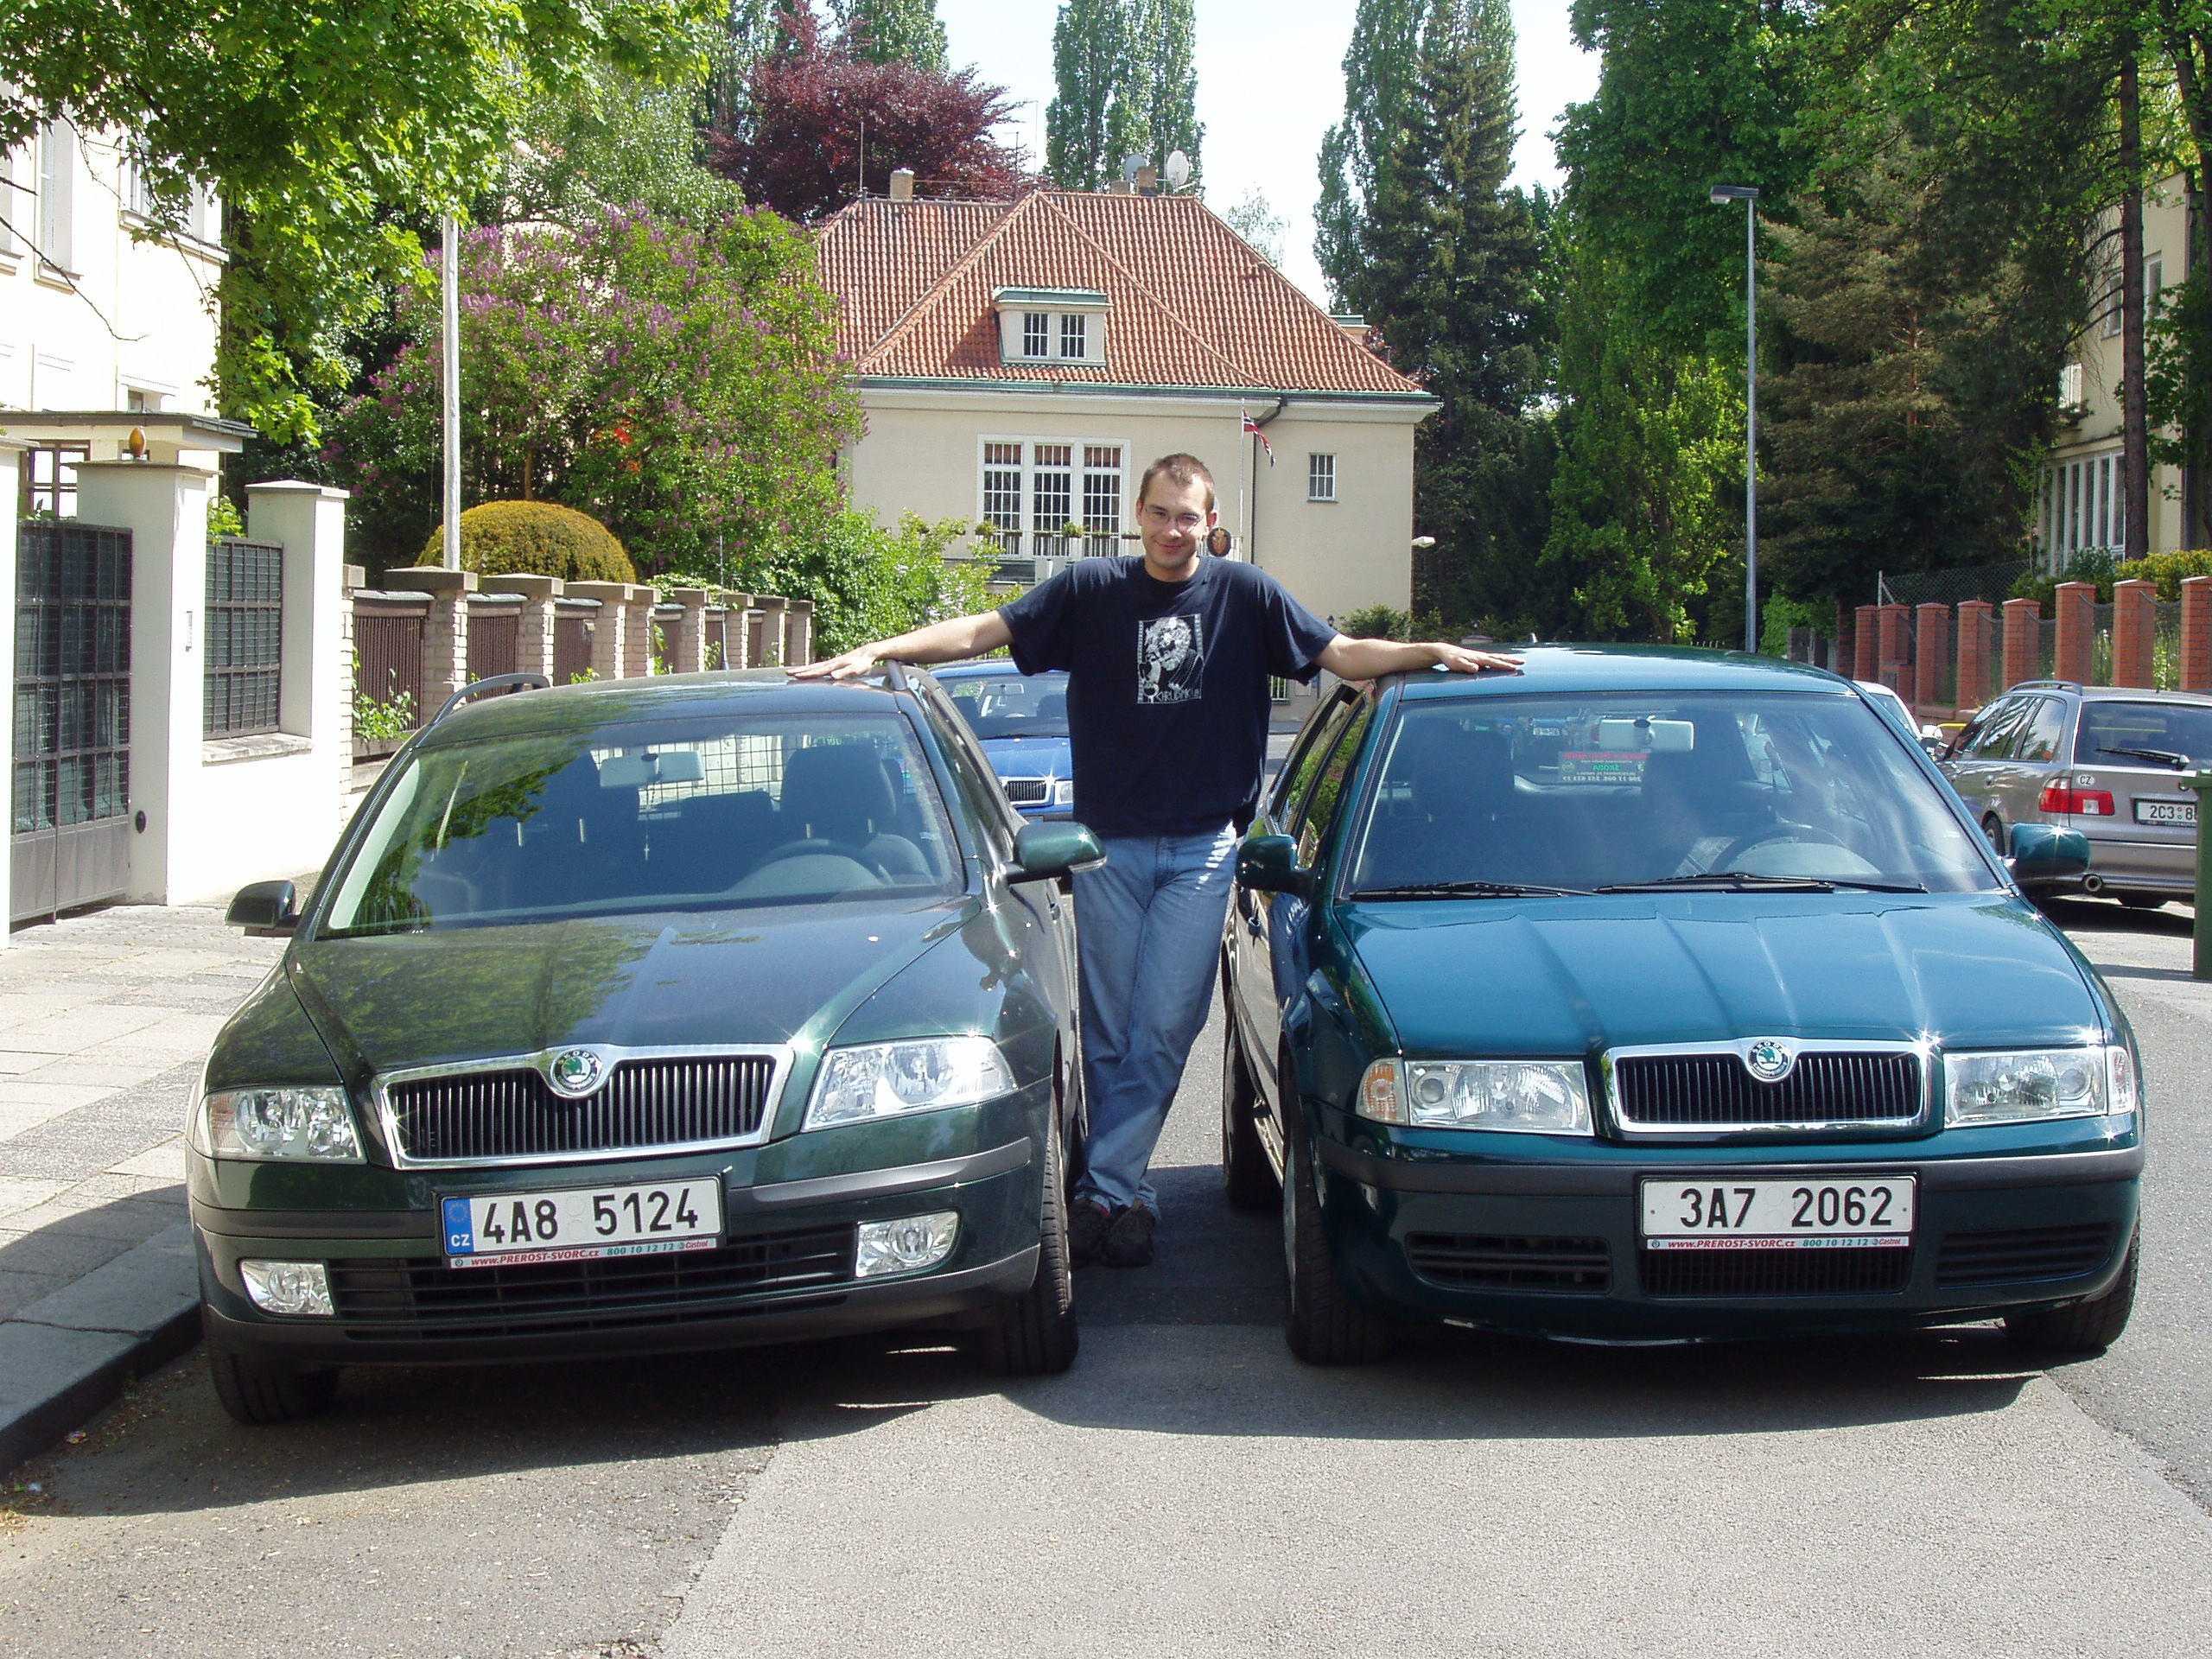 skoda-octavia-cars-guy-position.JPG